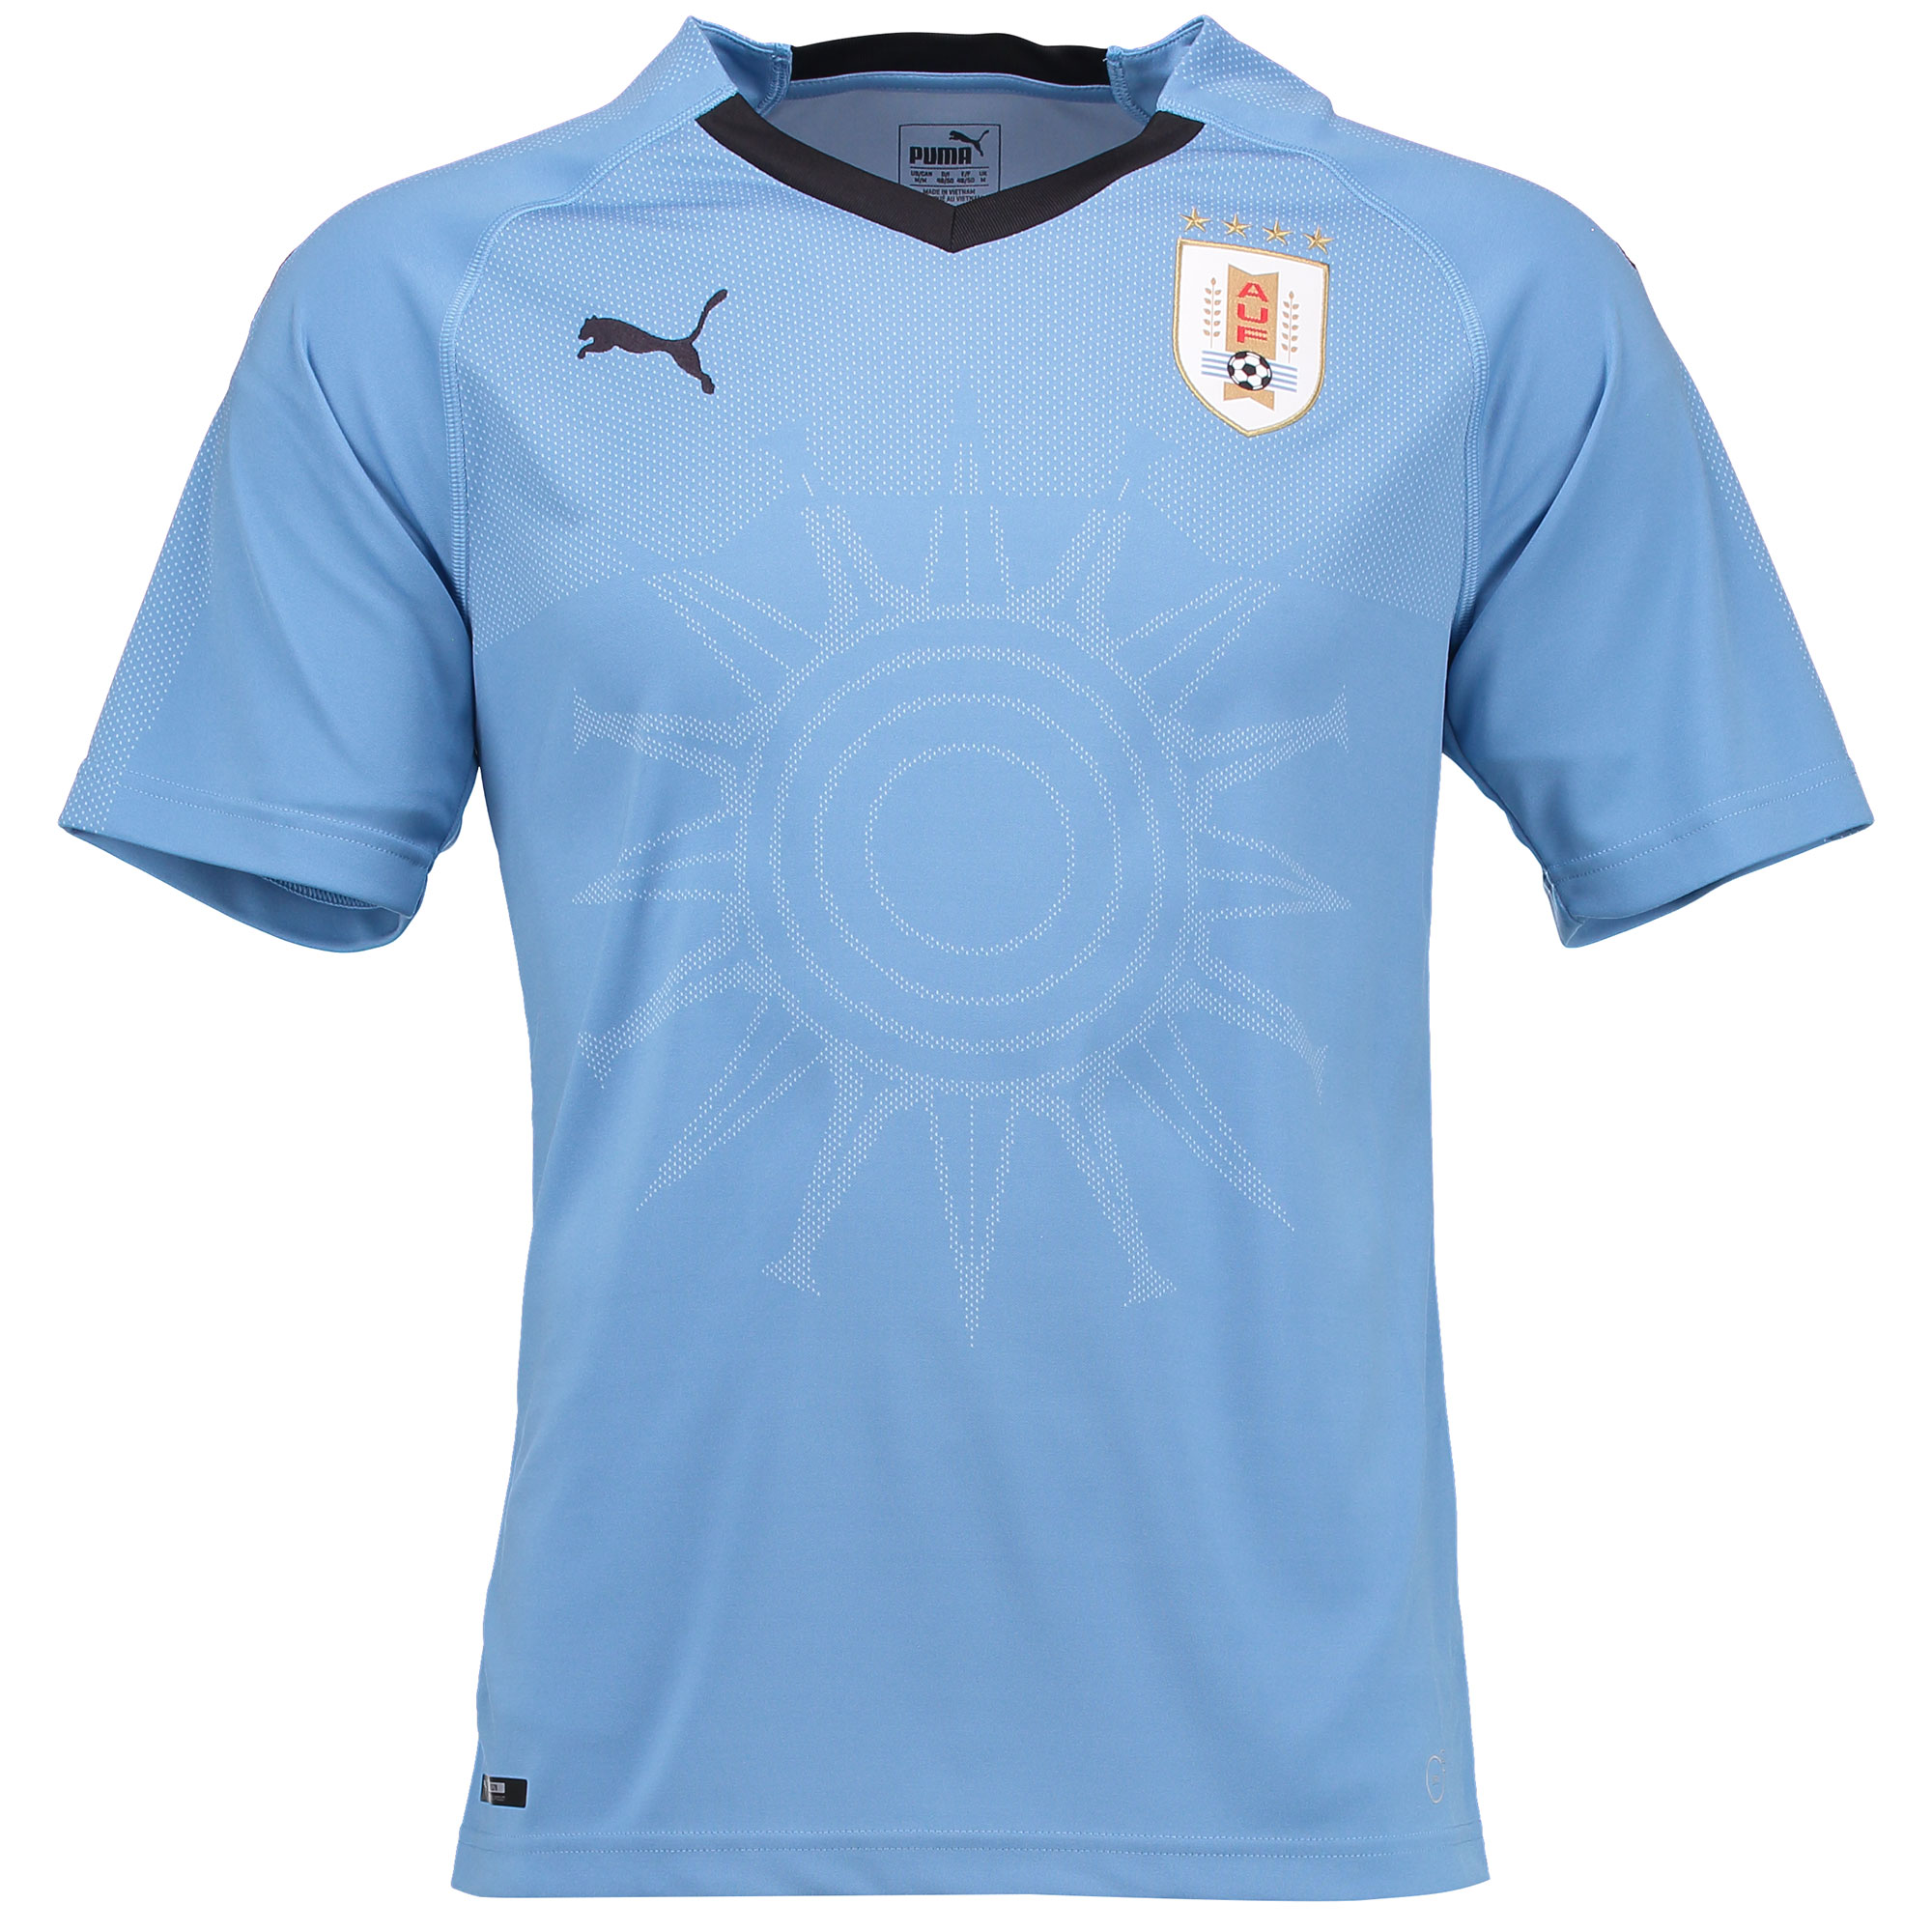 9d3710490 ... Click to enlarge image uruguay 2018 world cup puma home kit a3.jpg ...